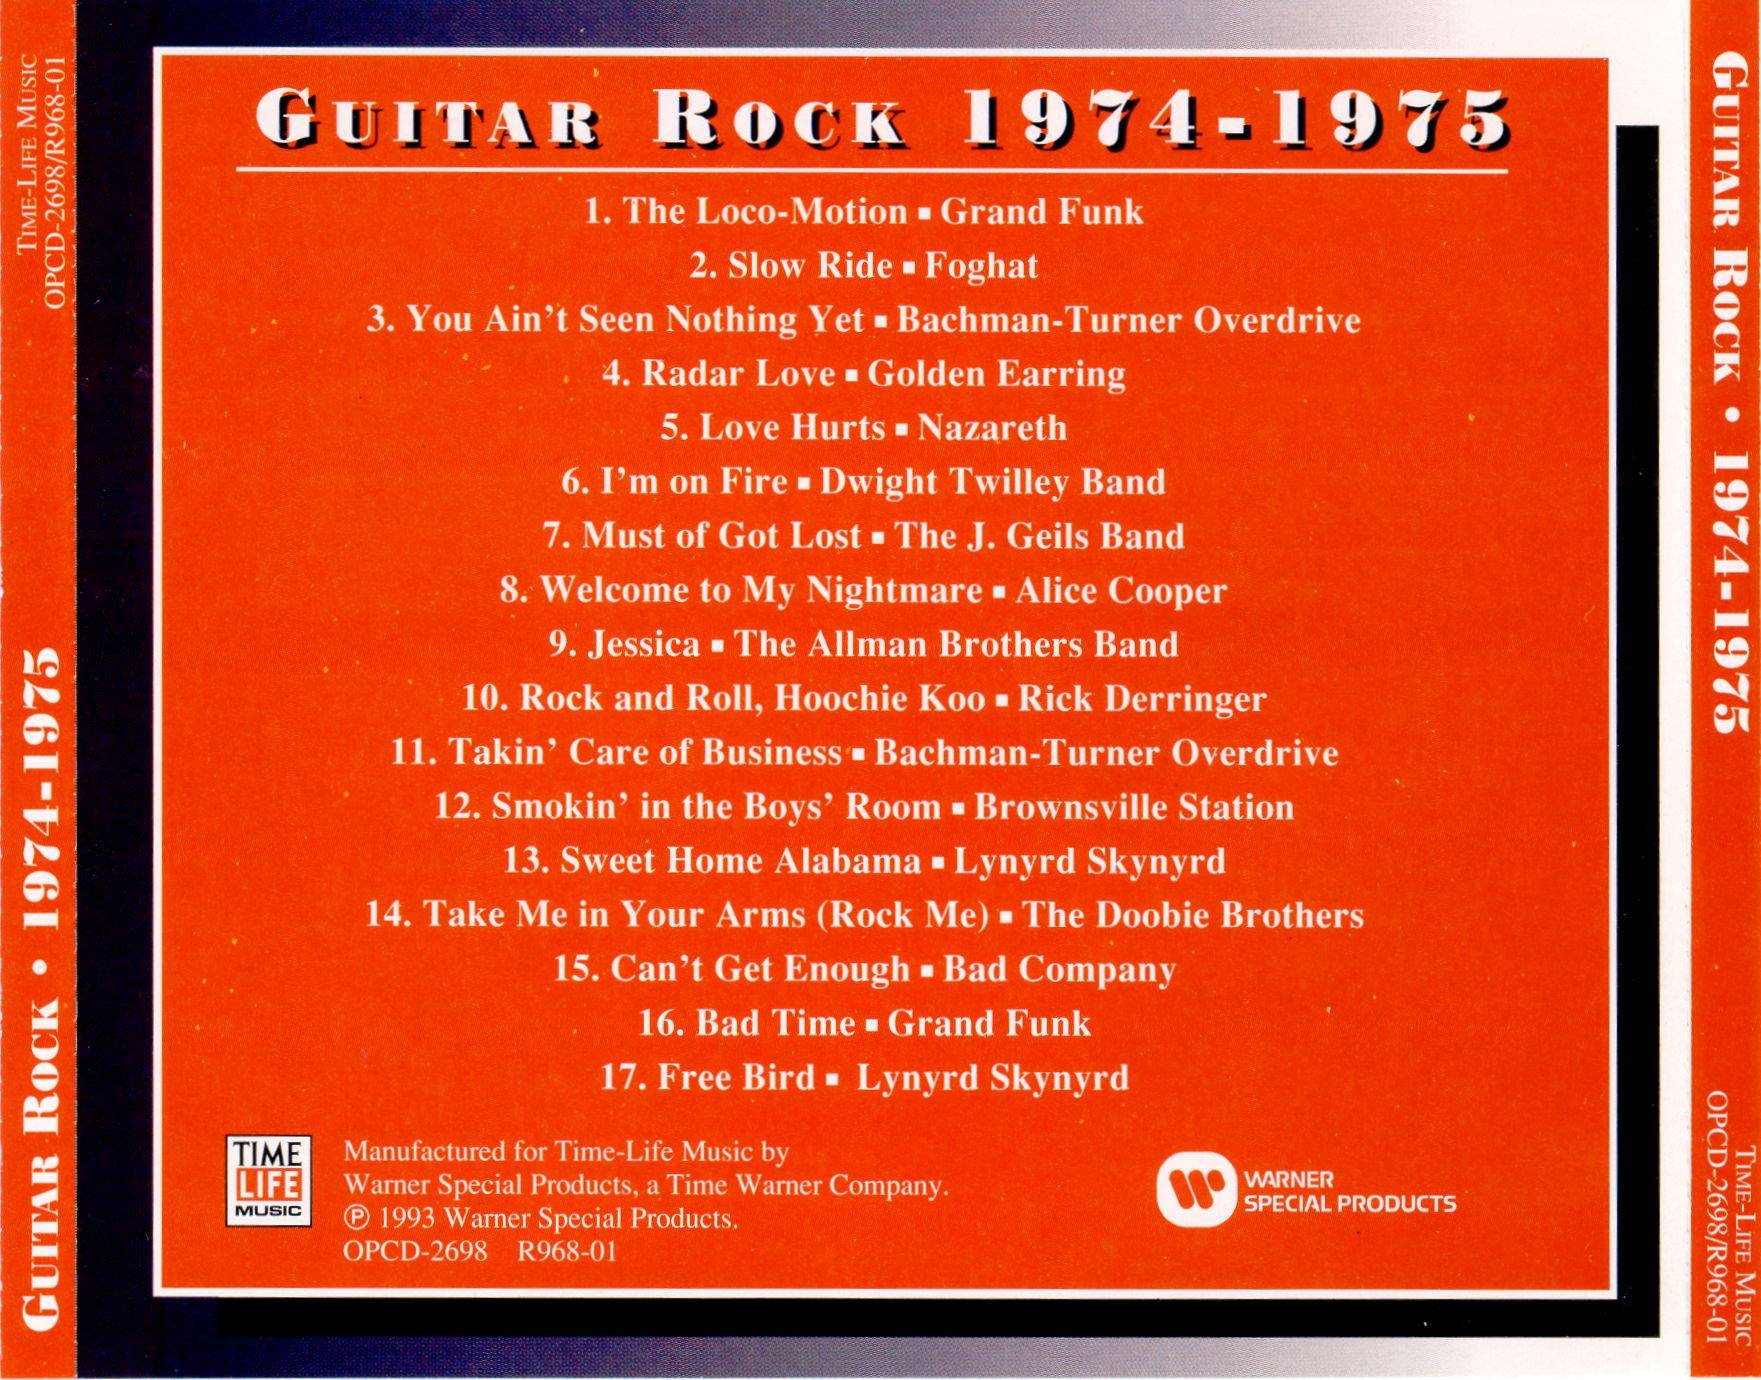 Time Life - Guitar Rock 1974 - 1975